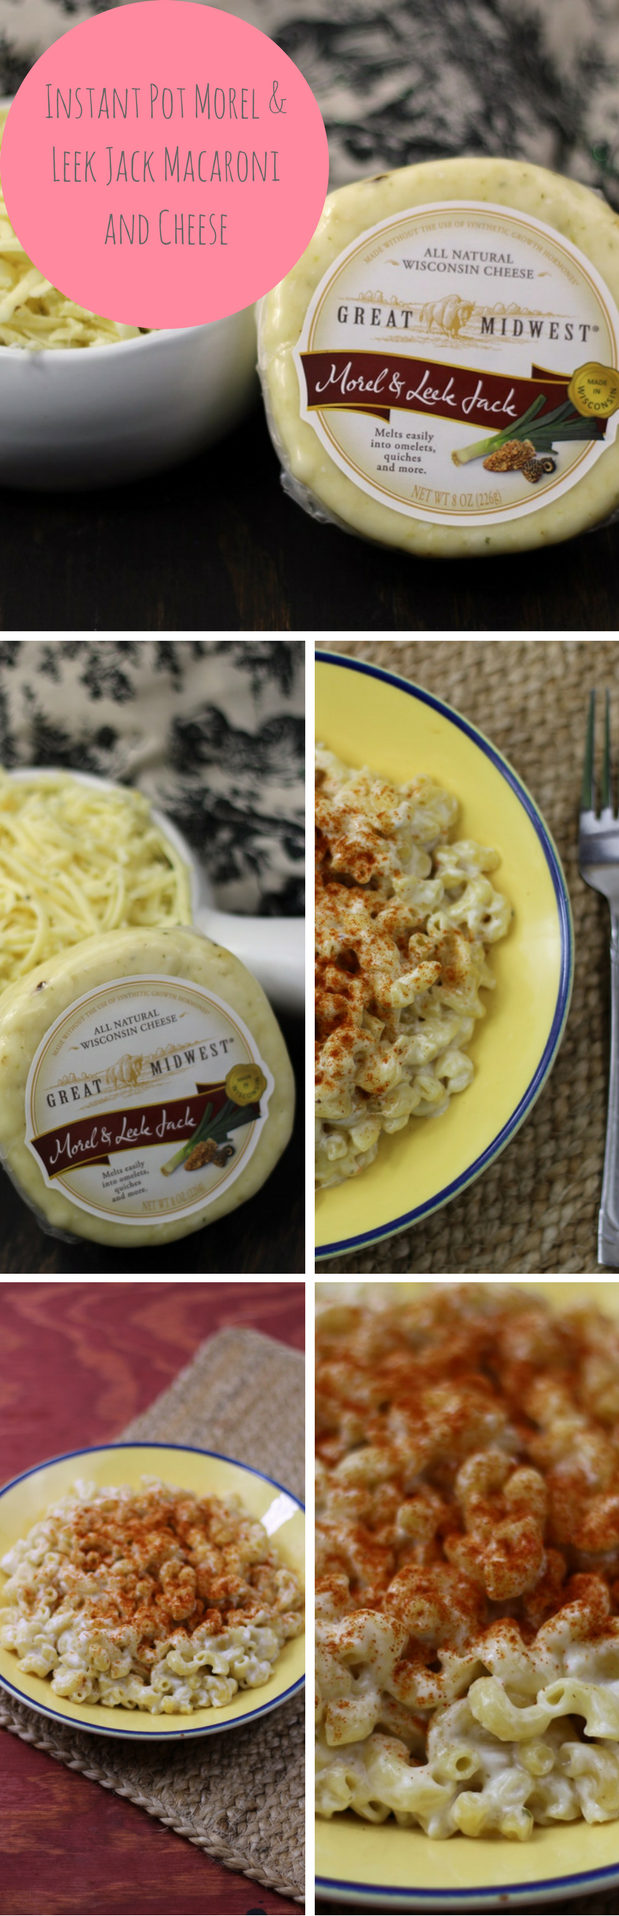 Instant Pot Morel & Leek Jack Macaroni and Cheese